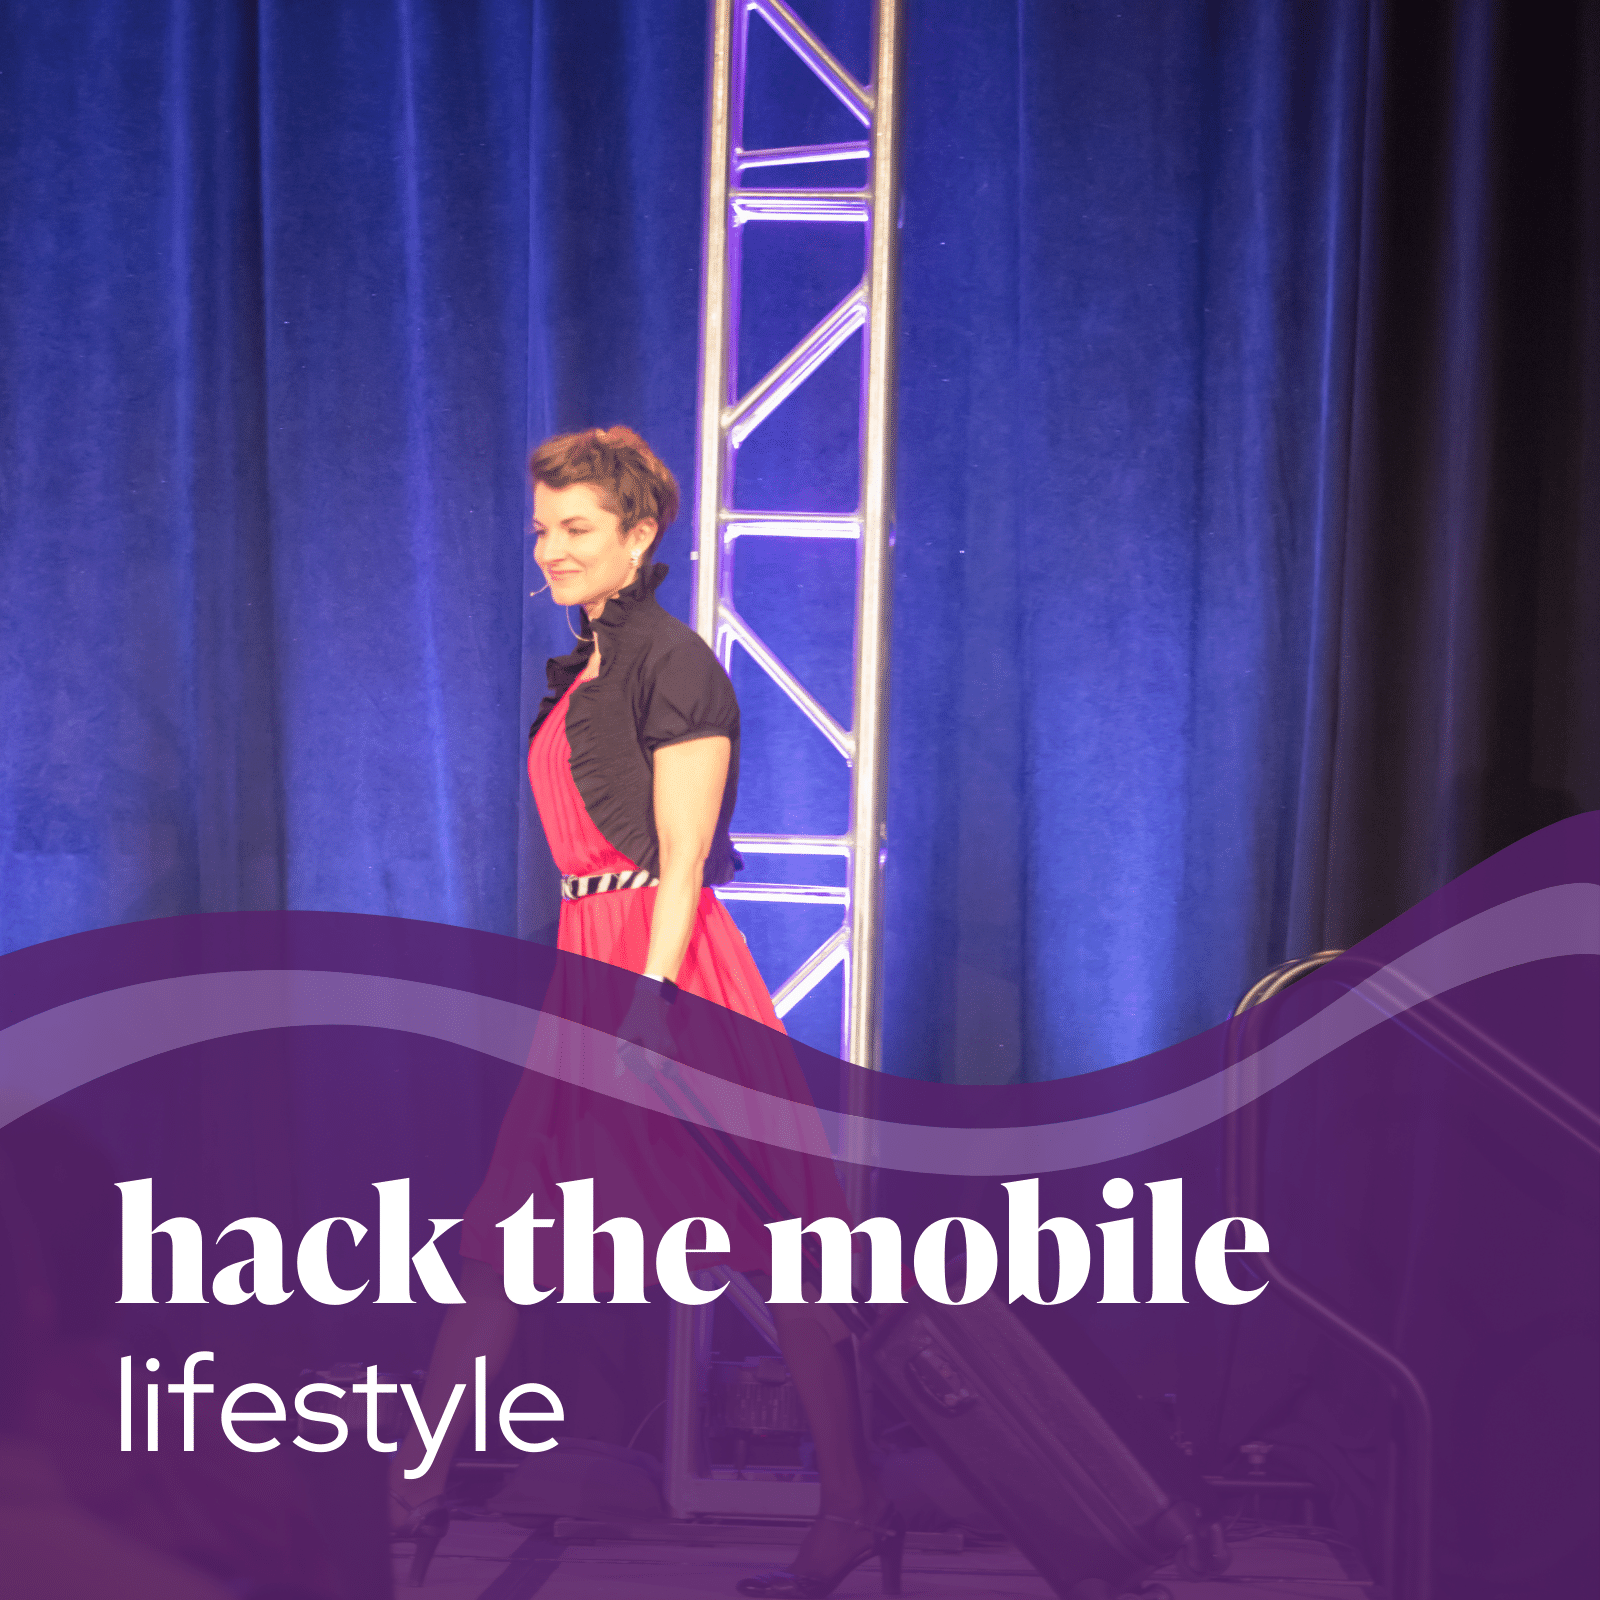 hack the mobile lifestyle